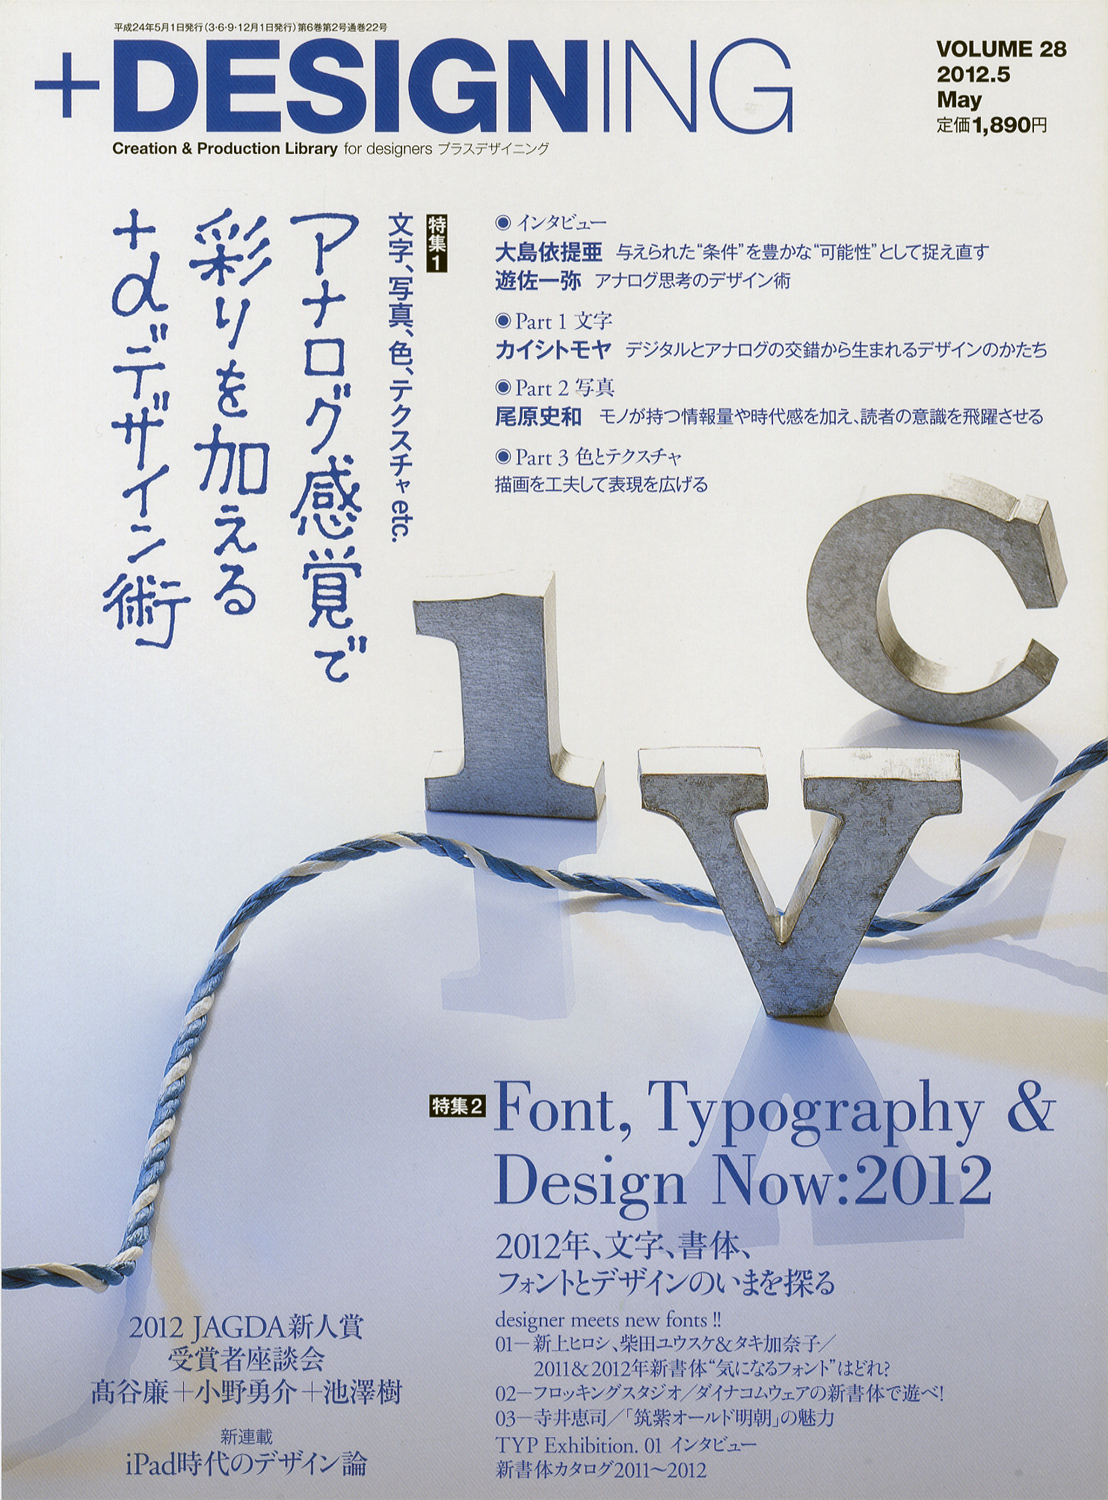 +DESIGNING VOLUME 28 2012.5 May